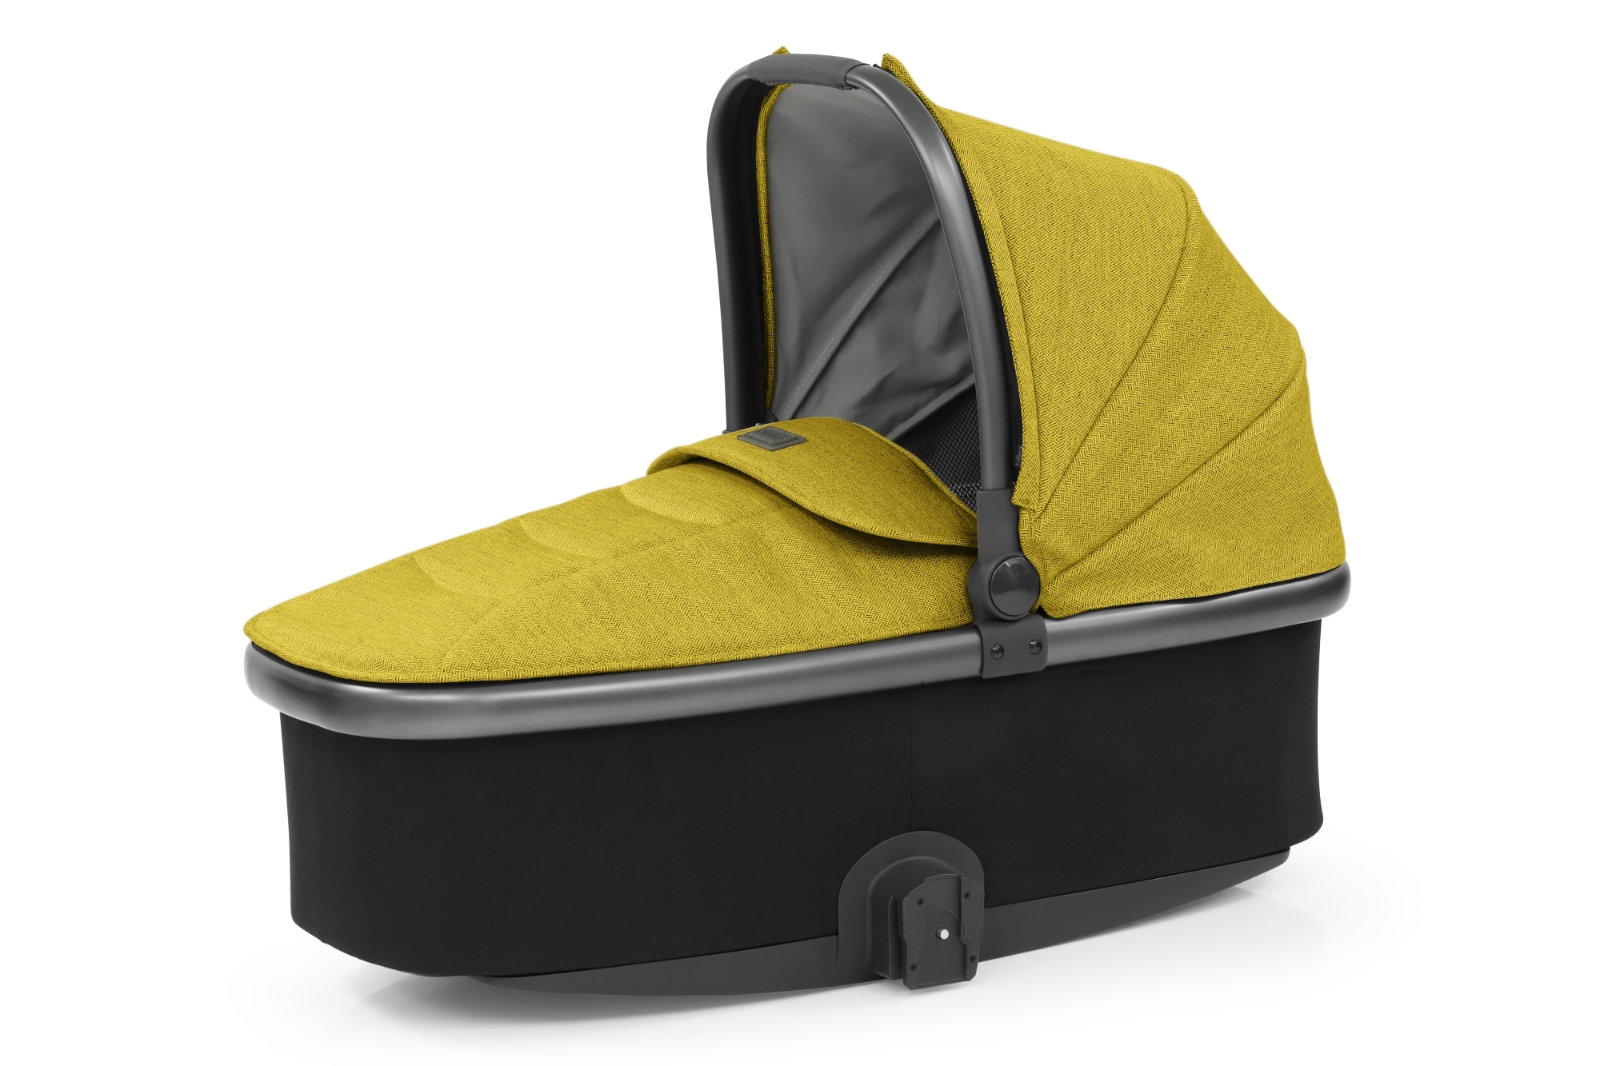 Babystyle Oyster 3 Carrycot (City Grey Chassis) - Mustard